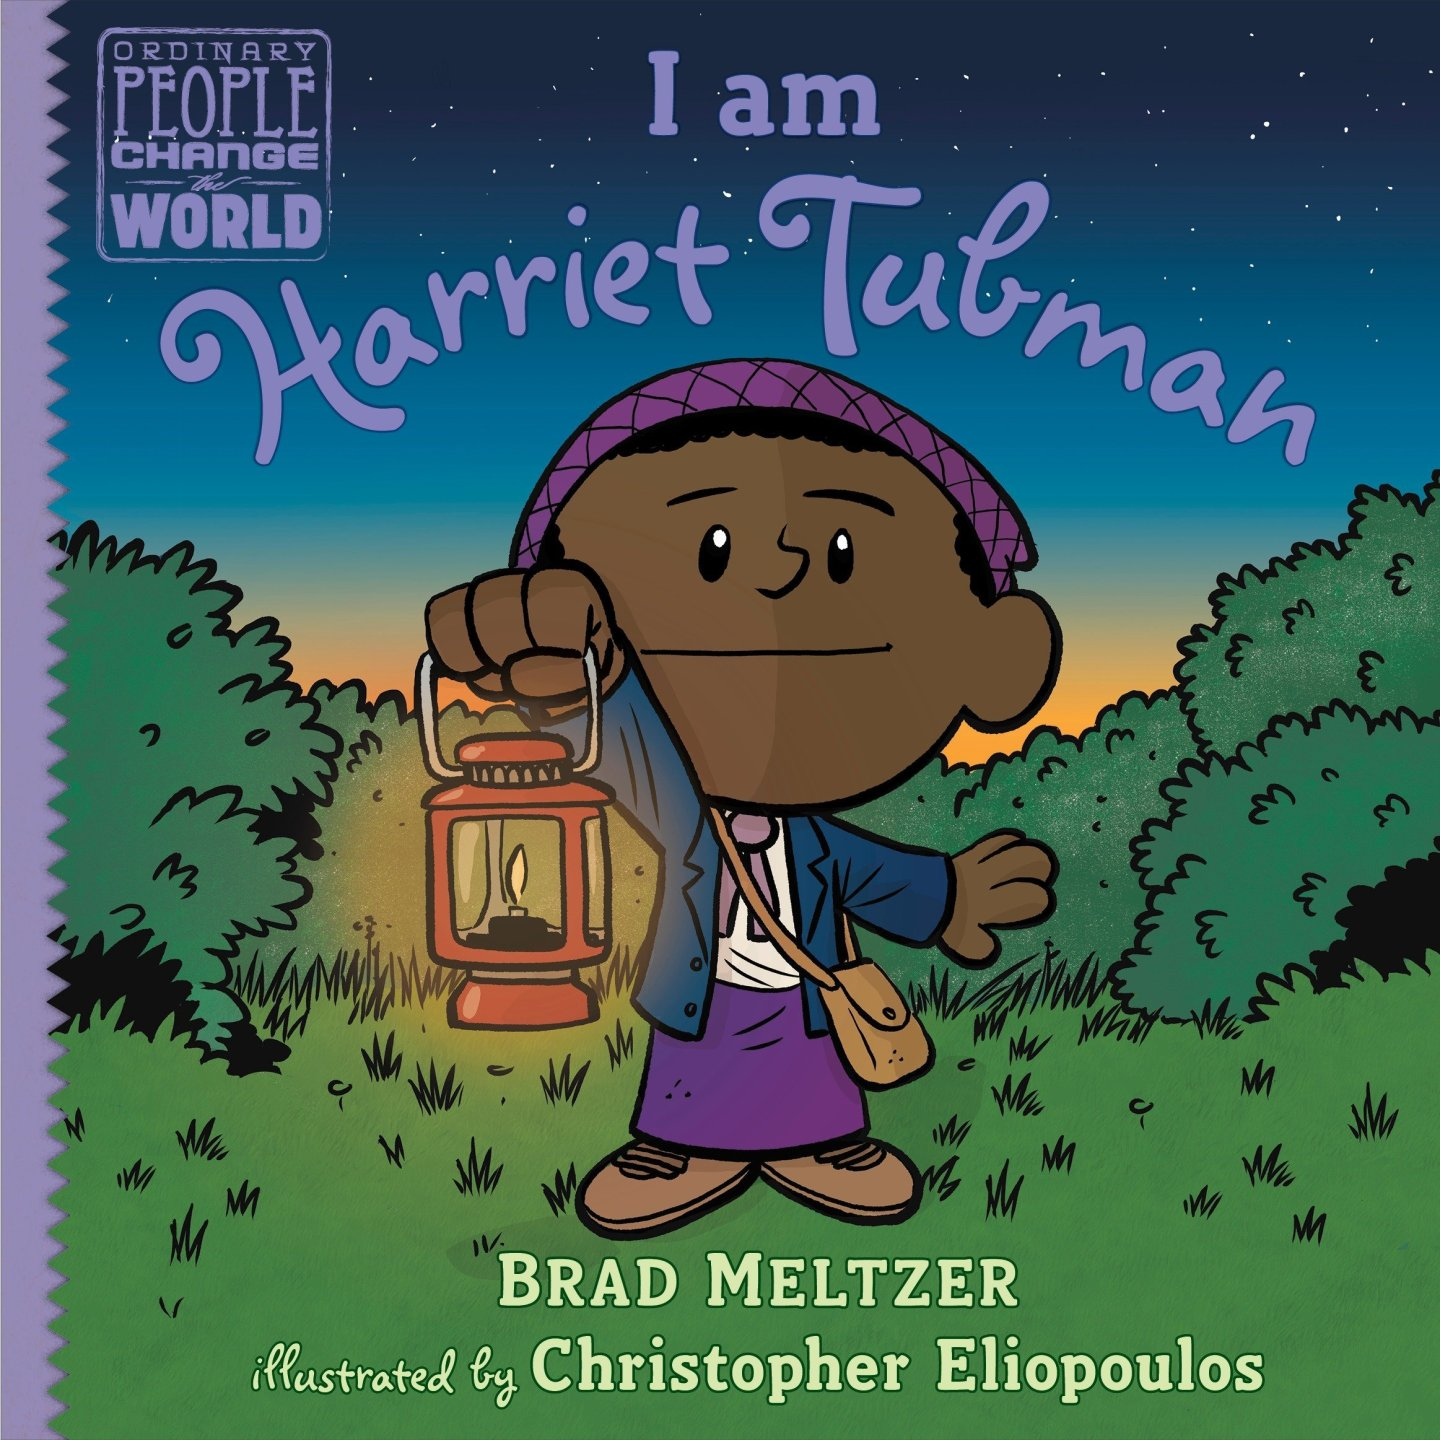 Harriet_Tubman_1 Must-Have Harriet Tubman Books for Your Literary Collection